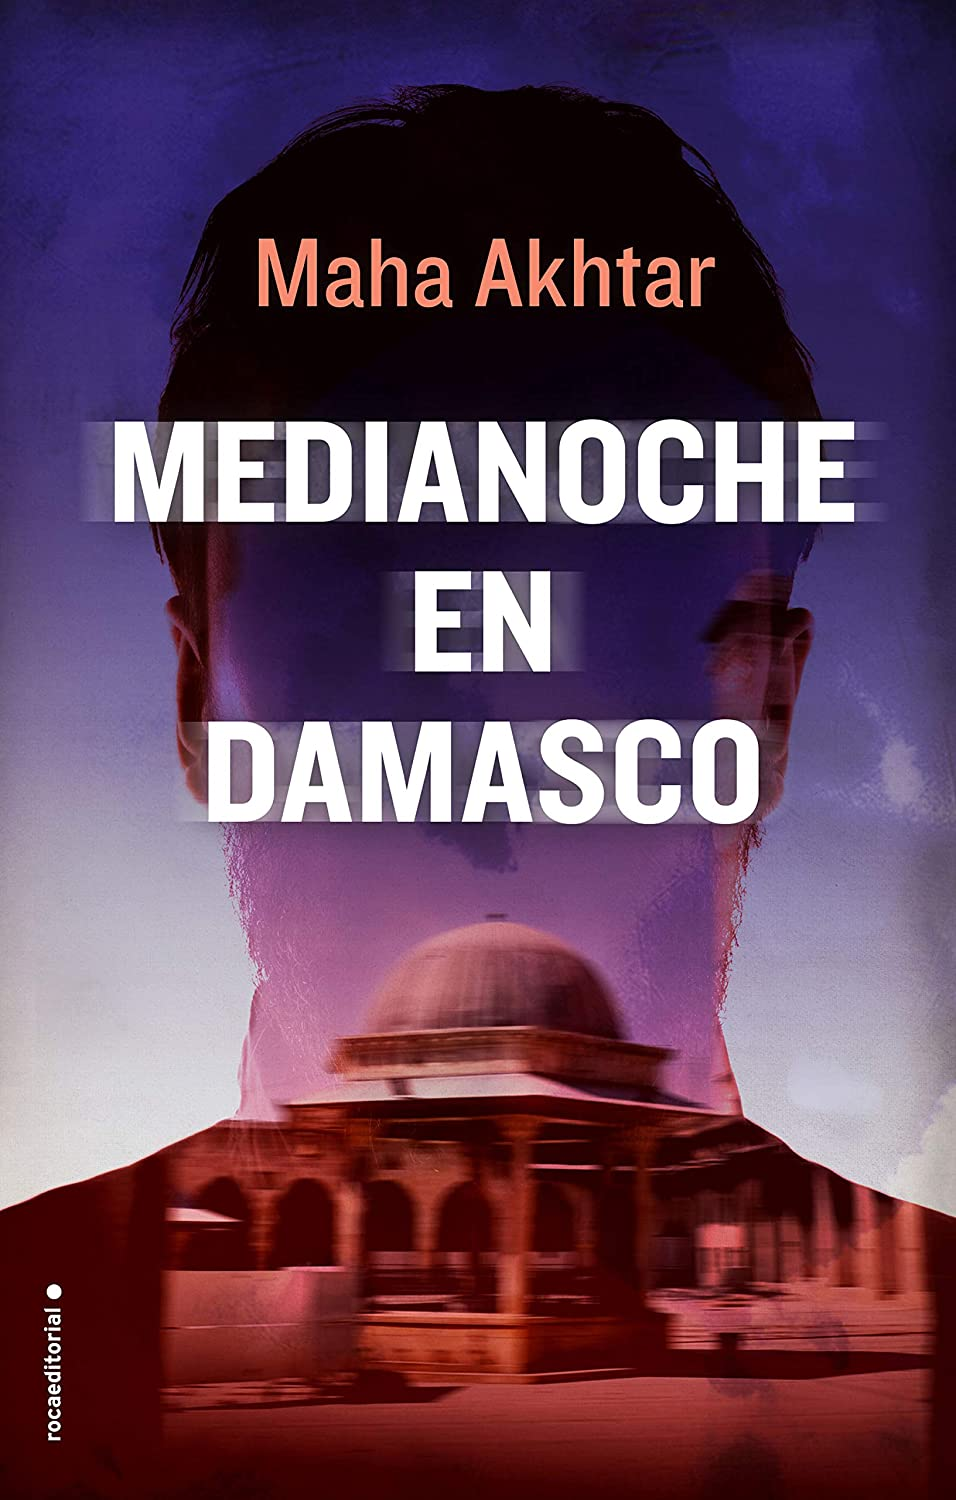 Medianoche en Damasco (Novela) eBook: Maha Akhtar, Enrique Alda ...